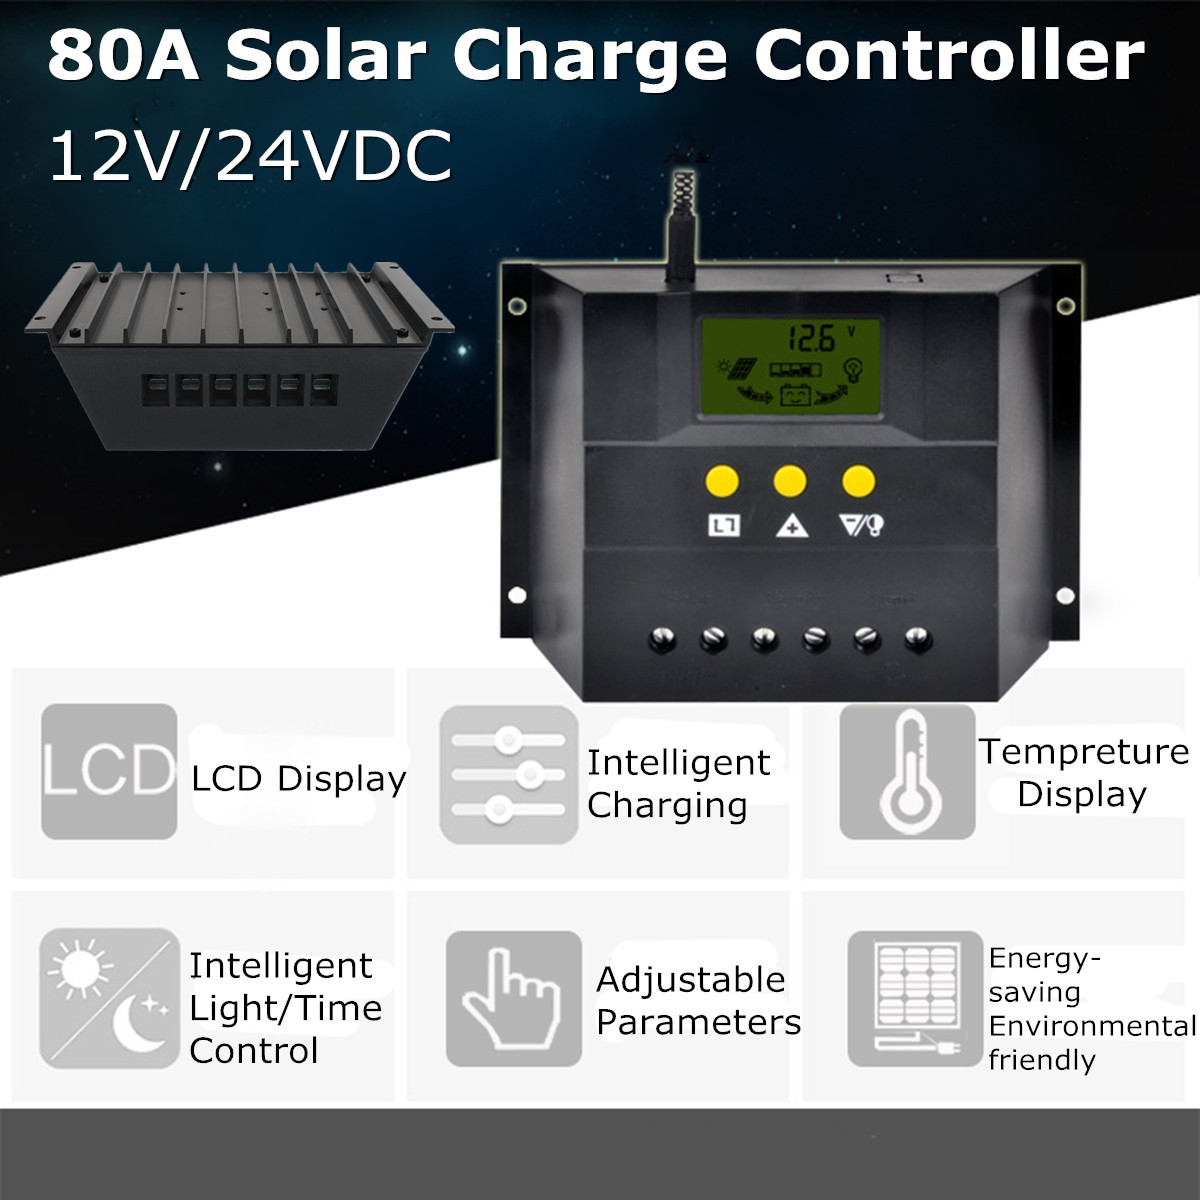 Solar Charge Controller 12V 24V 1920W MAX PWM Charging Mode 80A Auto PWM Battery Charger Regulator ABS Short-circuit Protection max short